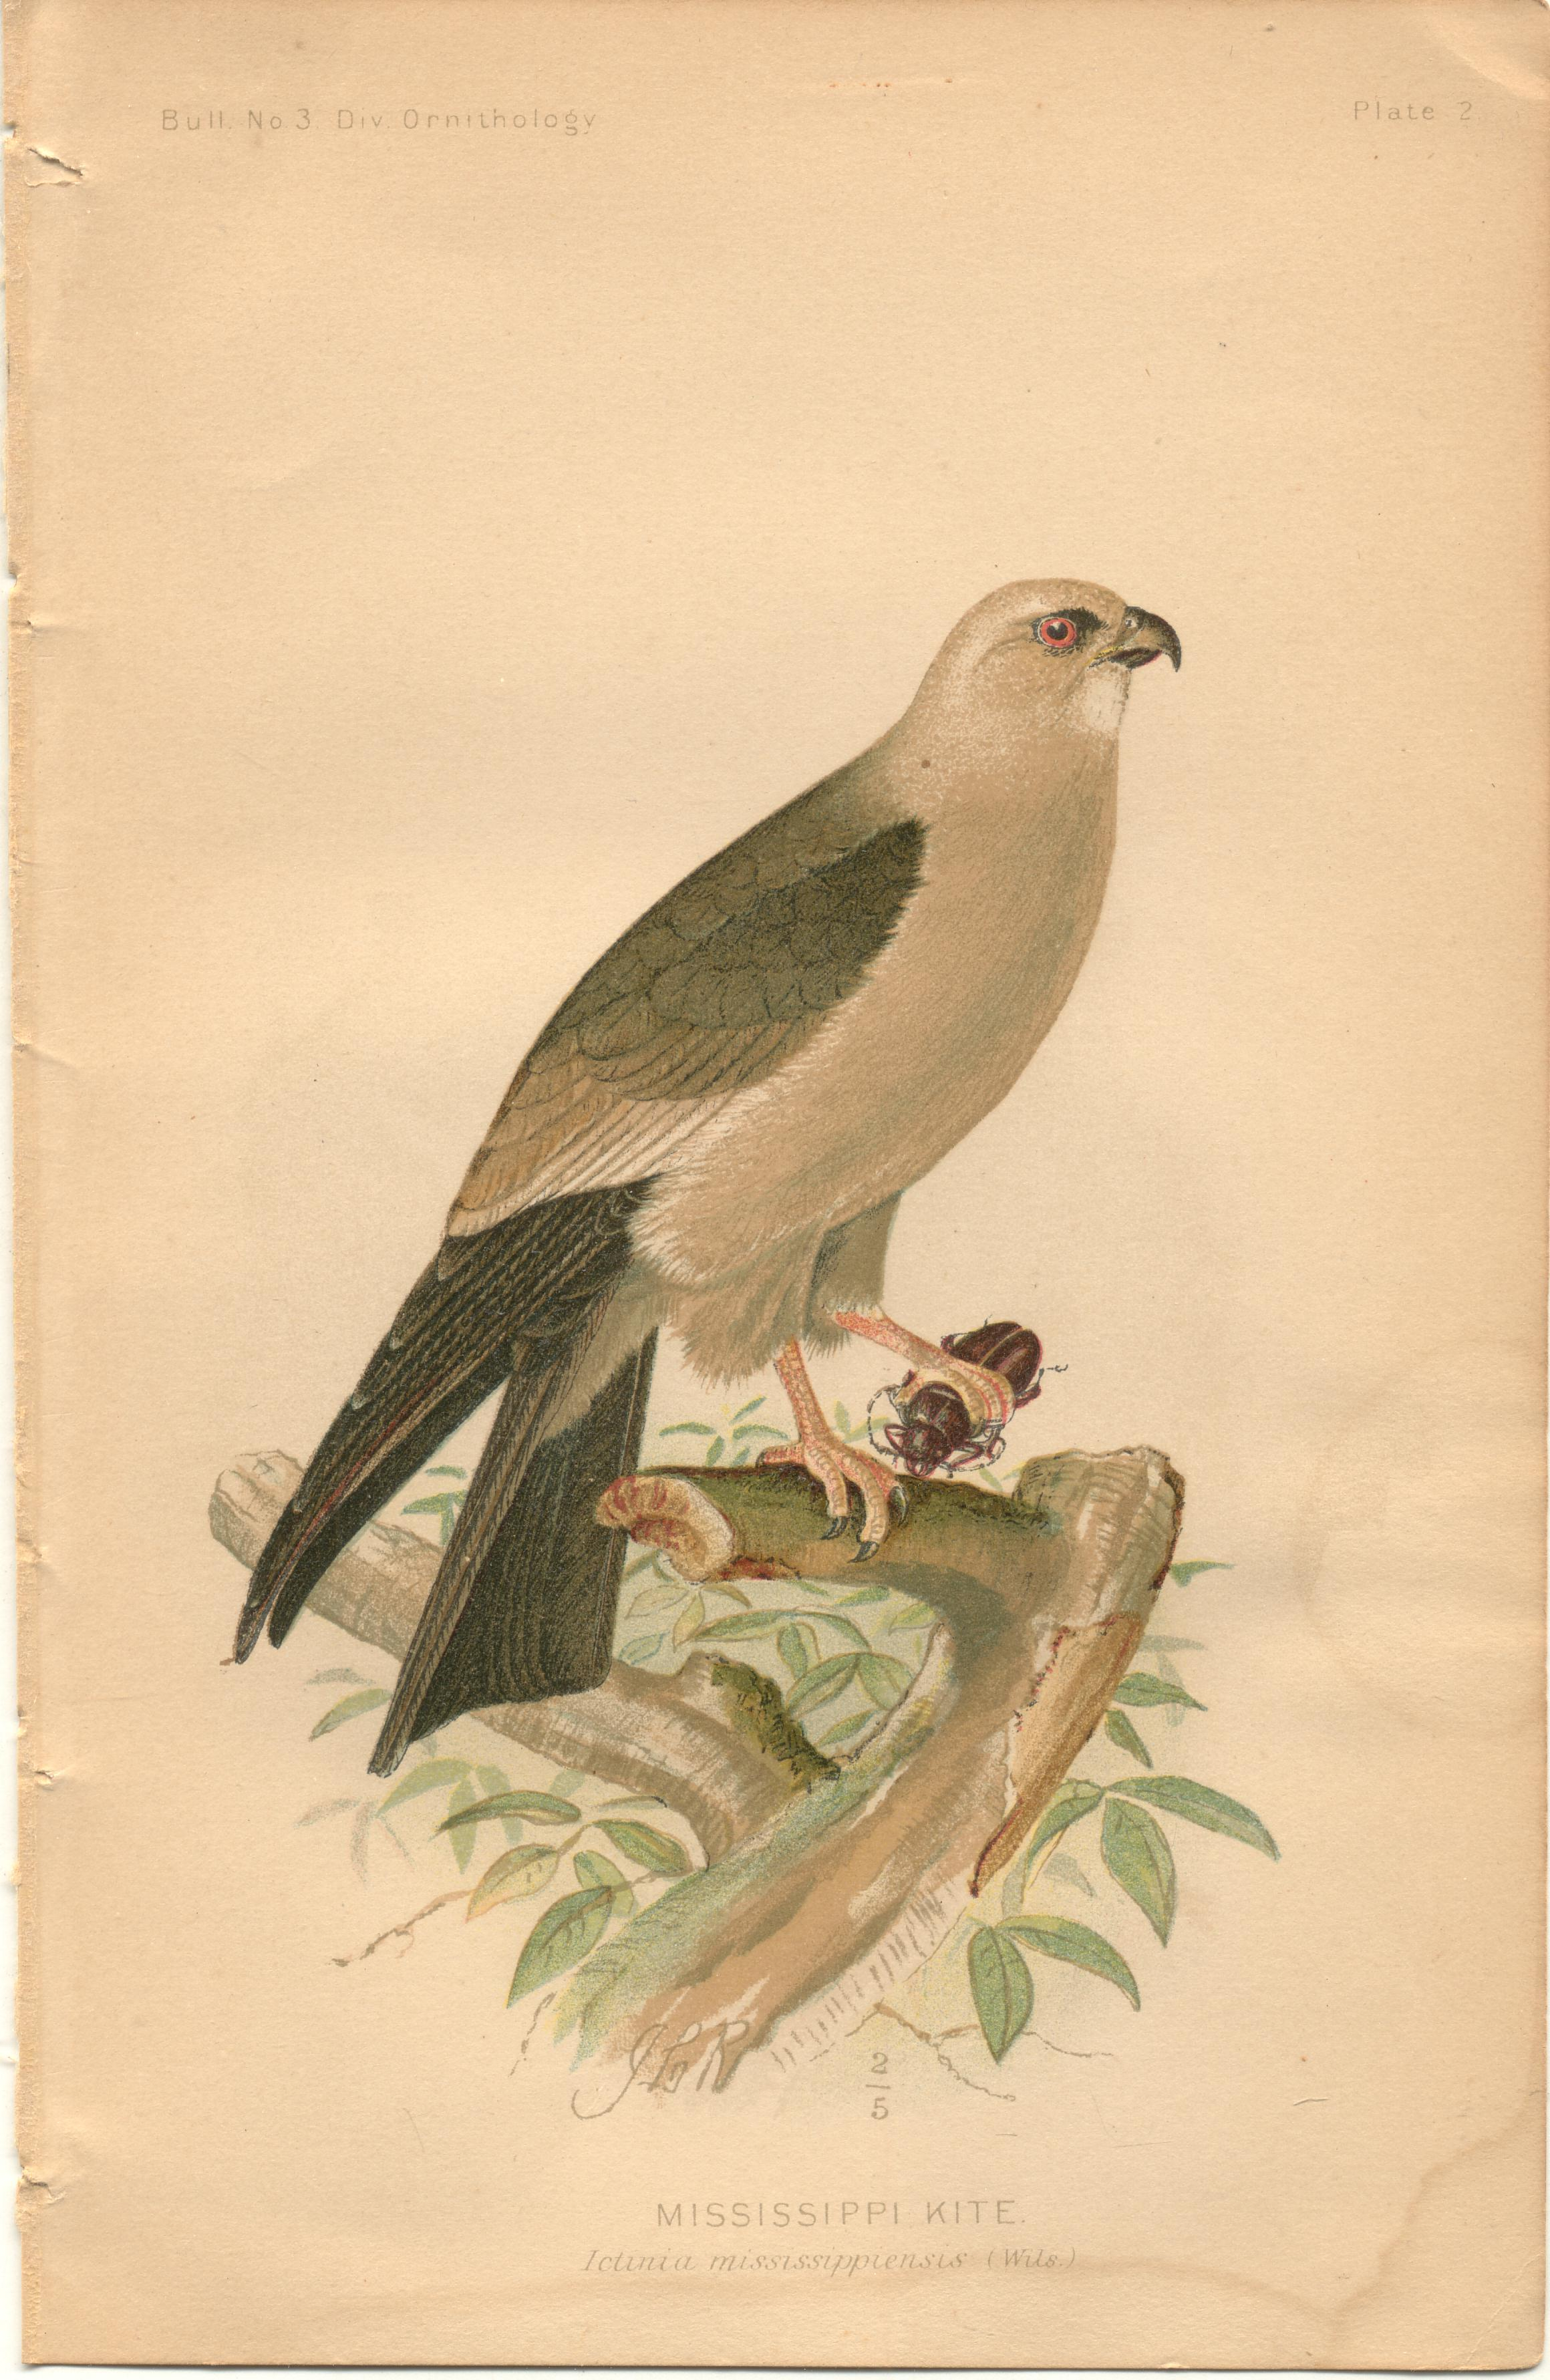 """Image for Mississippi Kite - single original antique chromolithographed plate from """"The Hawks and Owls of the United States in Their Relation to Agriculture"""